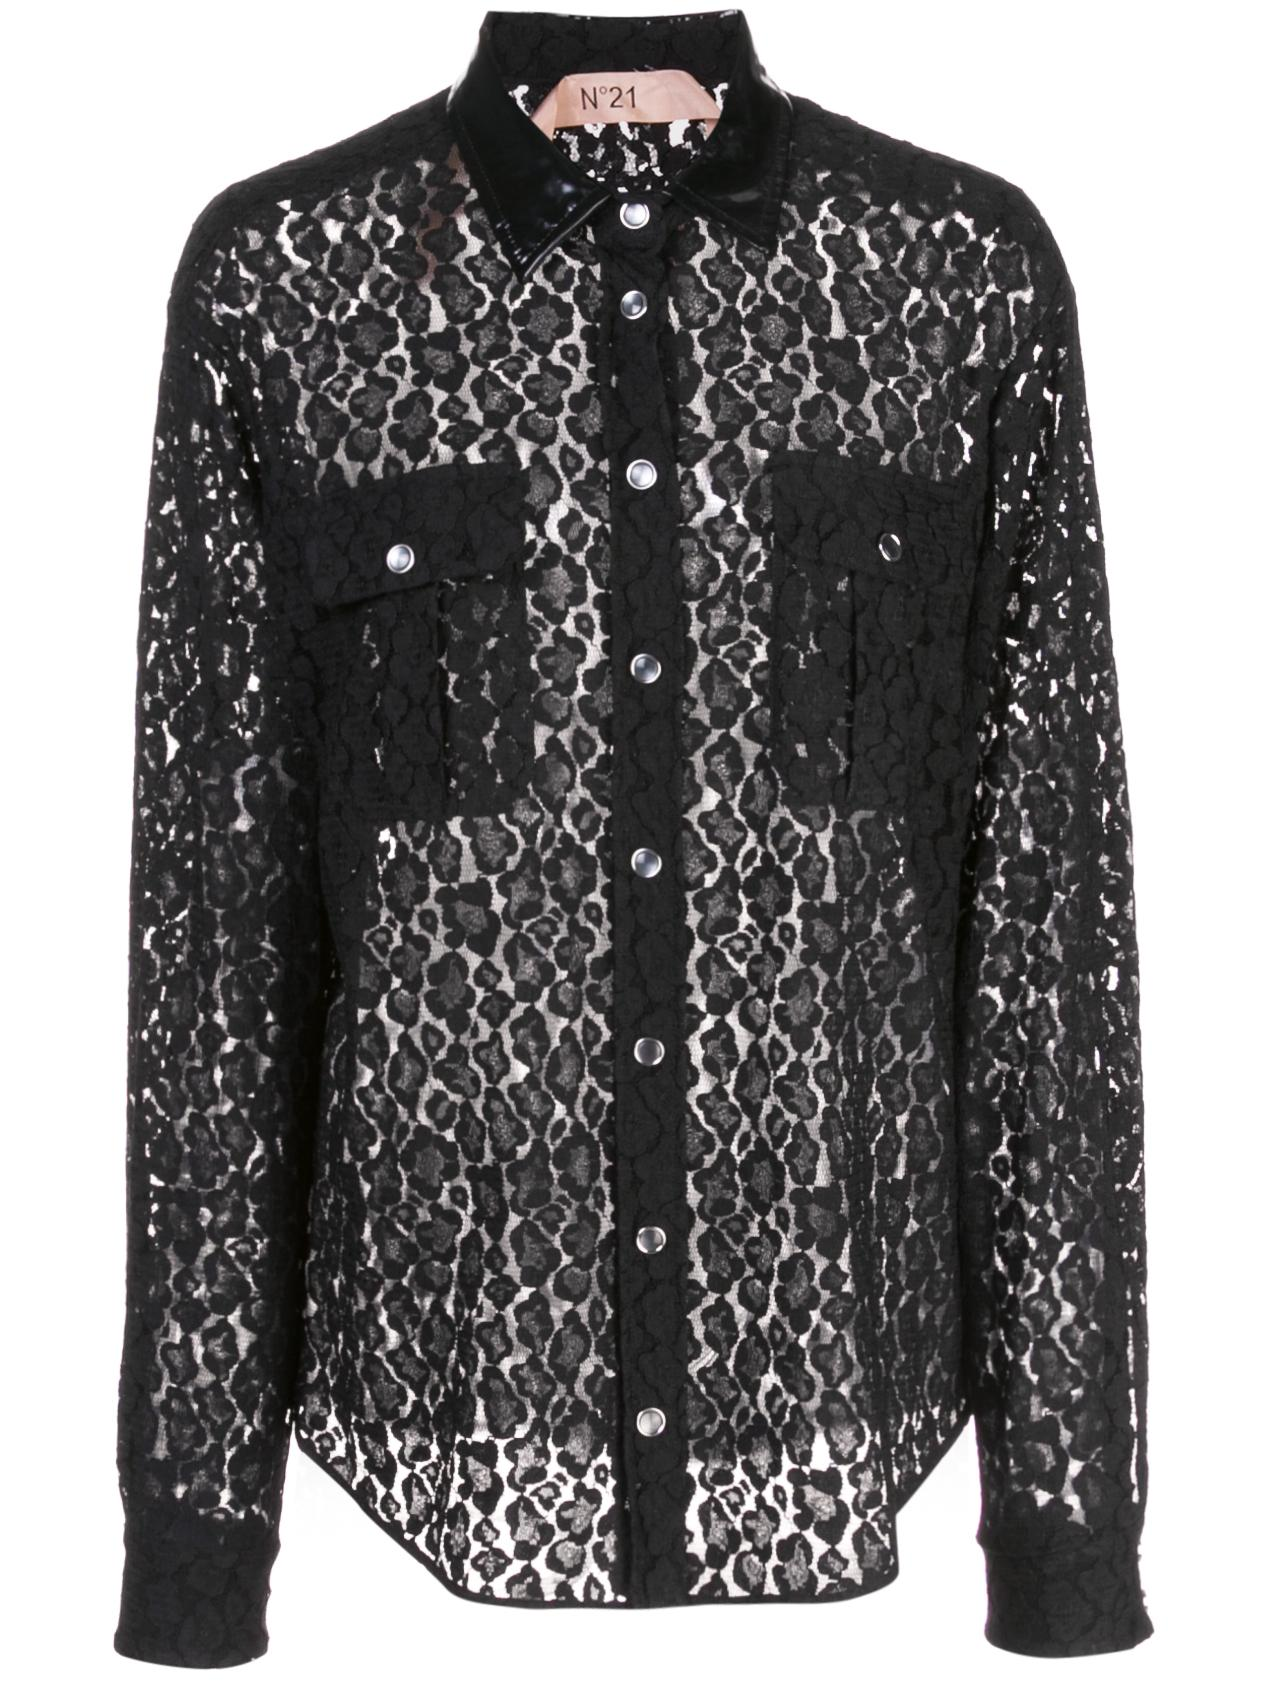 Long- Sleeve Lace Button Up Blouse Item # G063-4931-9000